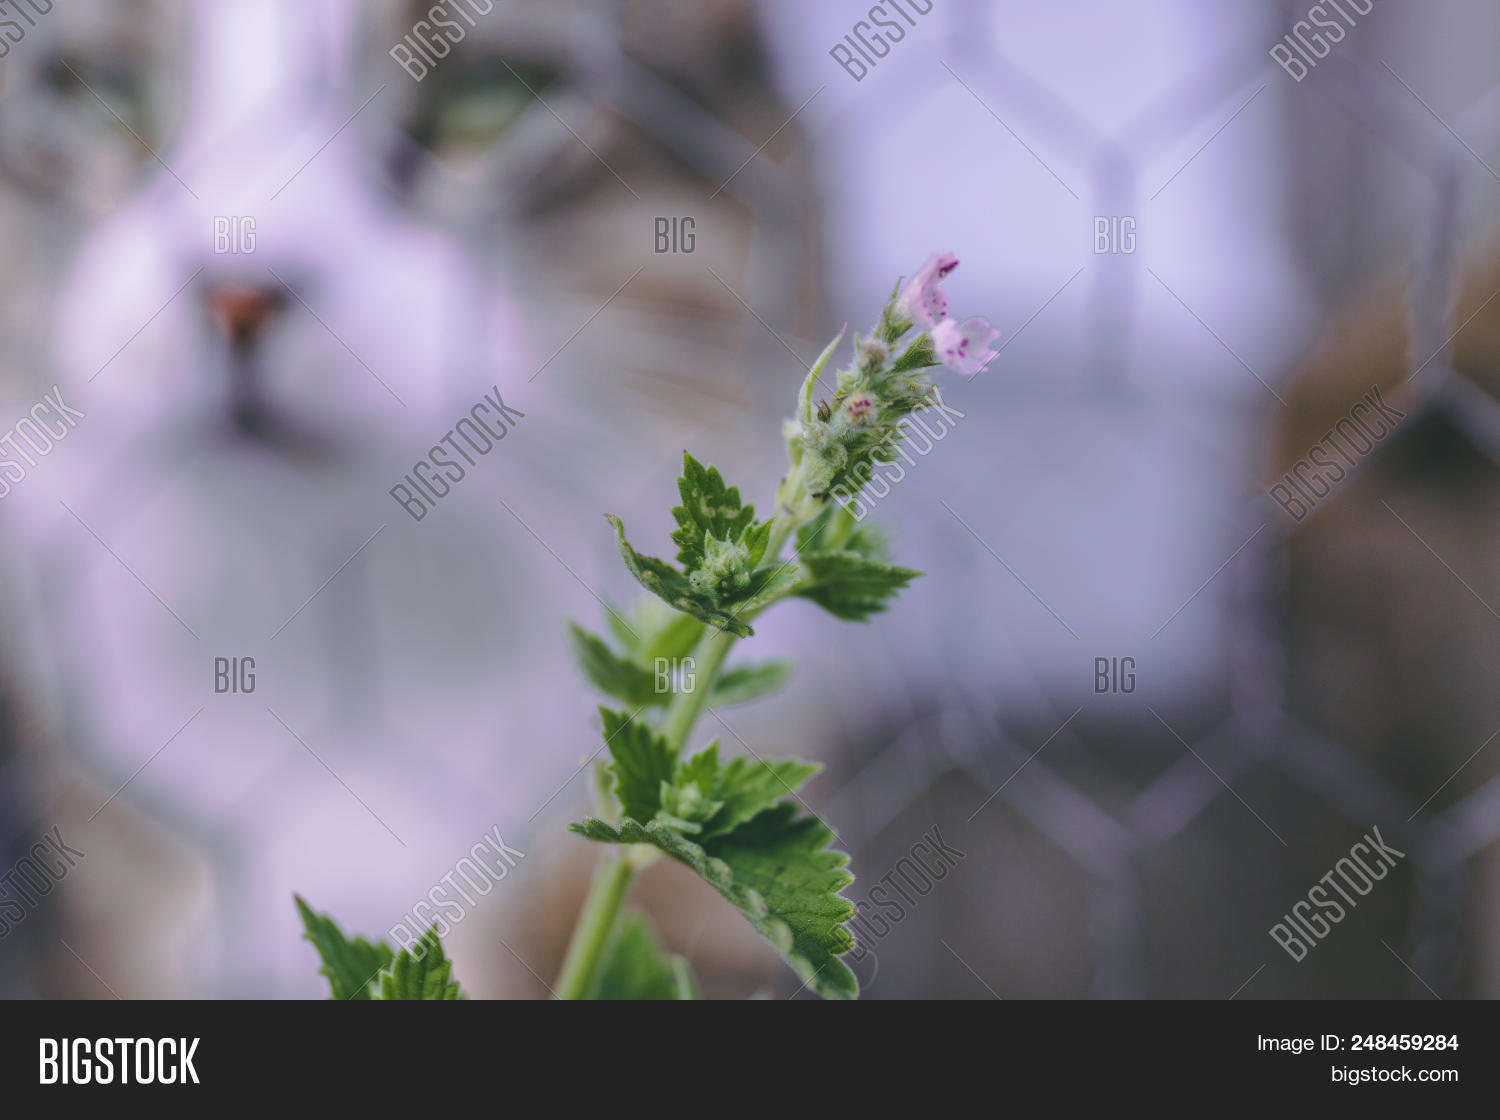 active,animal,beautiful,blooming,blossom,blue,calm,cat,catmint,catnip,close,domestic,feline,flower,fresh,friend,fur,garden,gray,green,grey,head,healthy,herb,herbal,leaf,mint,natural,nature,nepeta,outdoor,perennial,pet,plant,summer,touch,weather,whisker,young